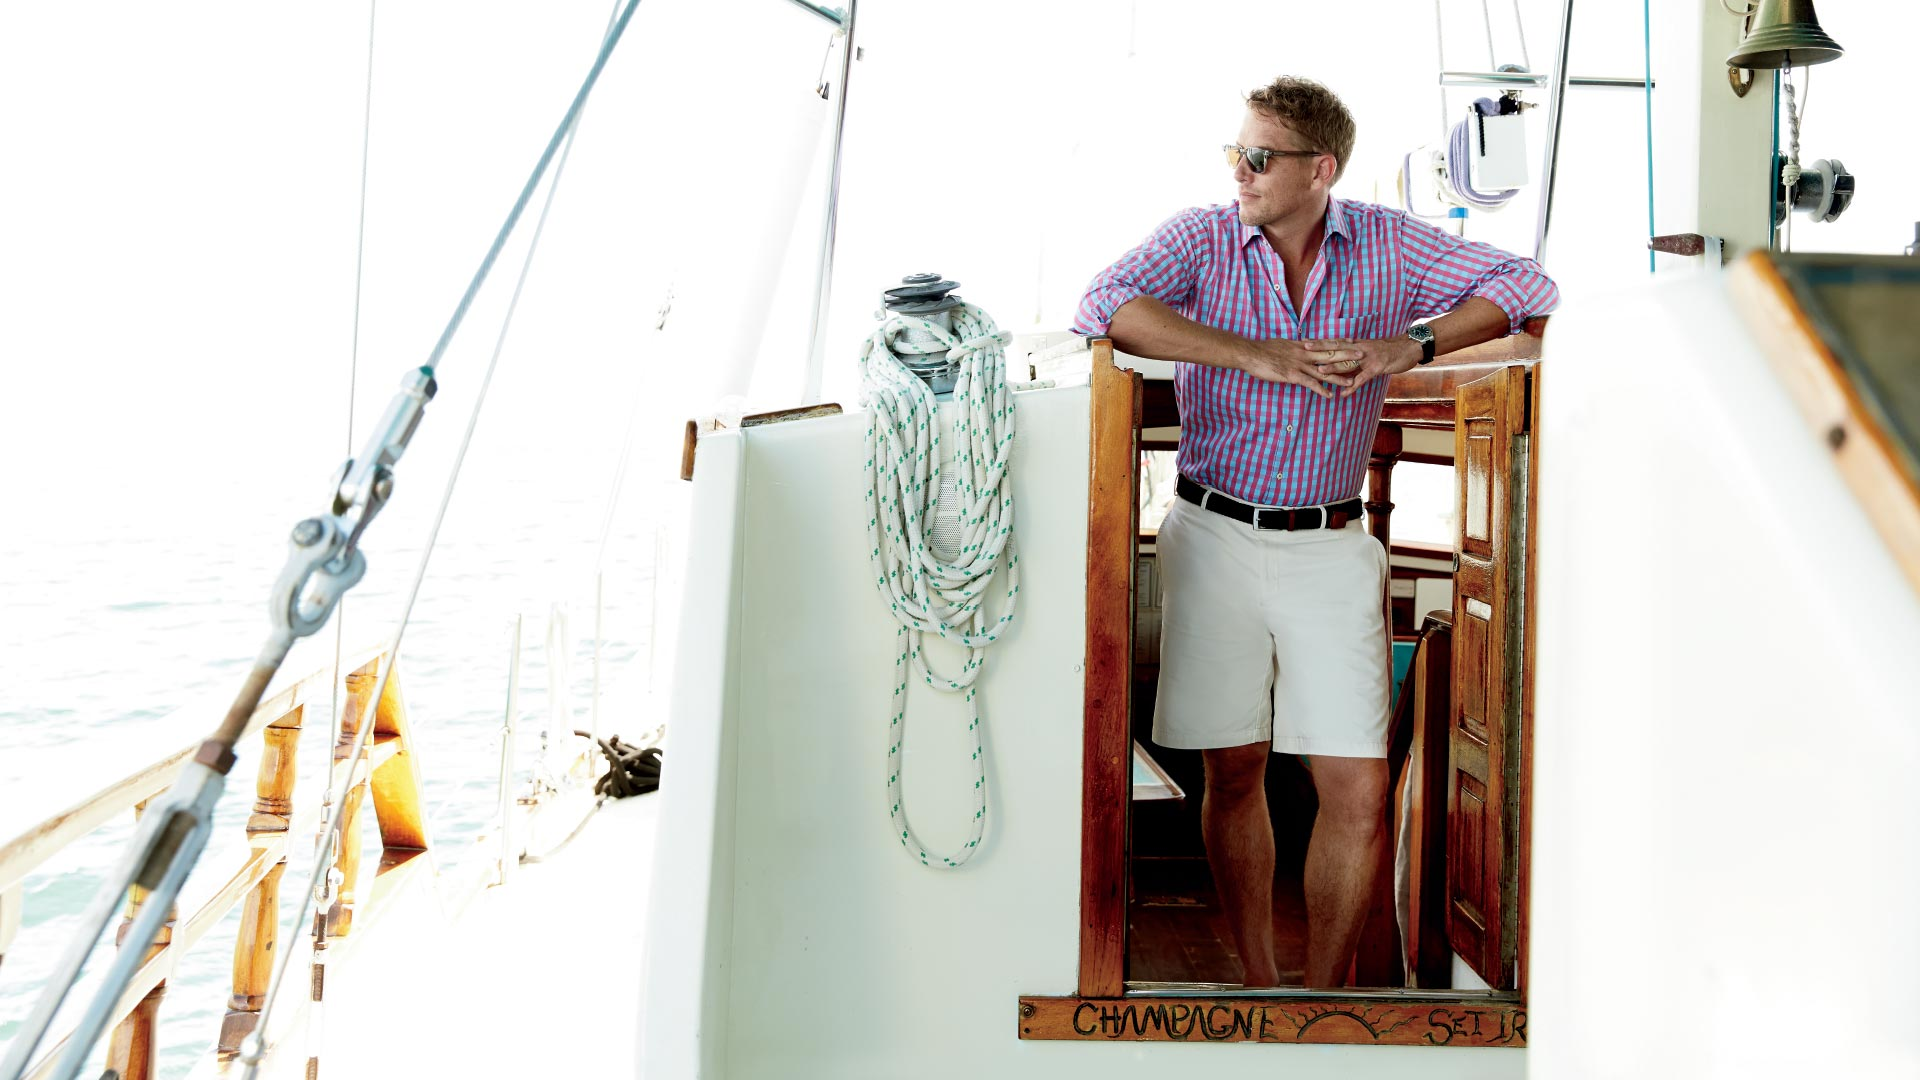 Peter Millar Image of Model on Boat Outside